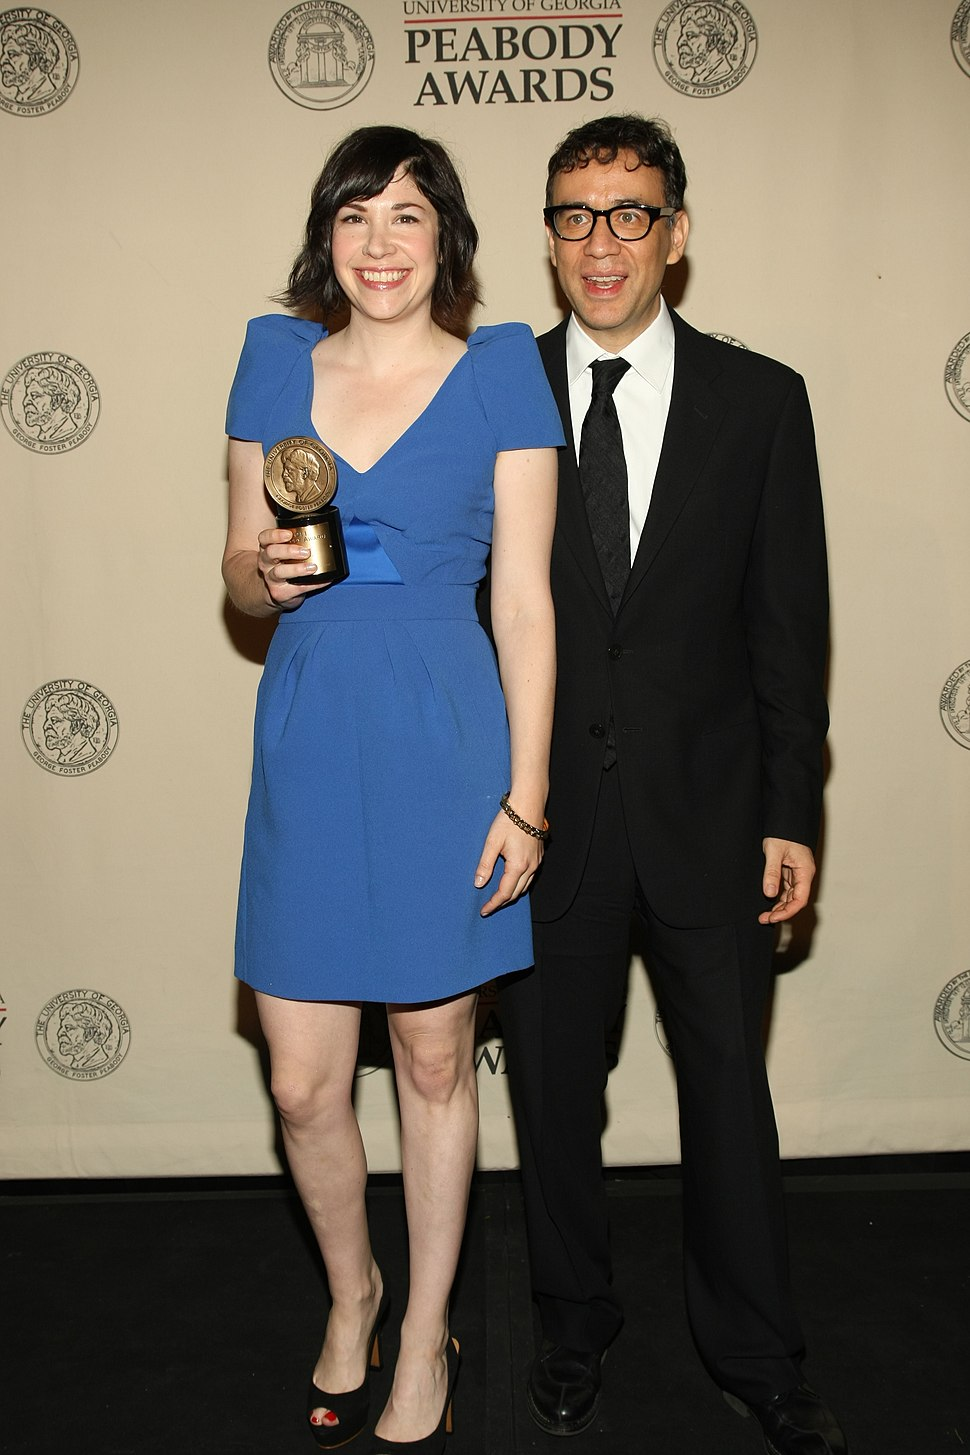 Fred Armisen and Carrie Brownstein with Peabody Award